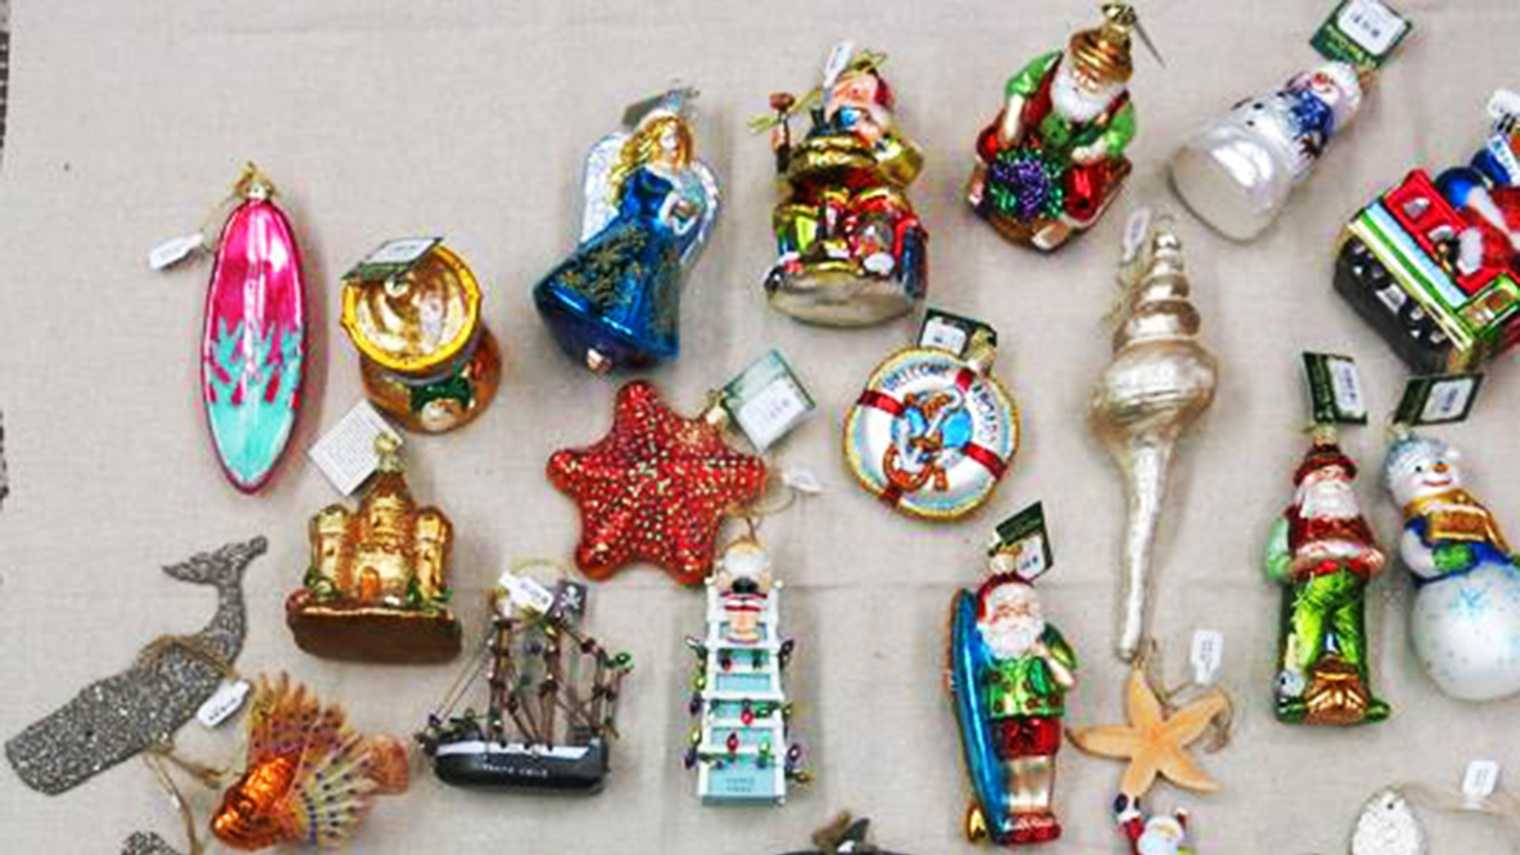 A few of the stolen Christmas ornaments are seen.